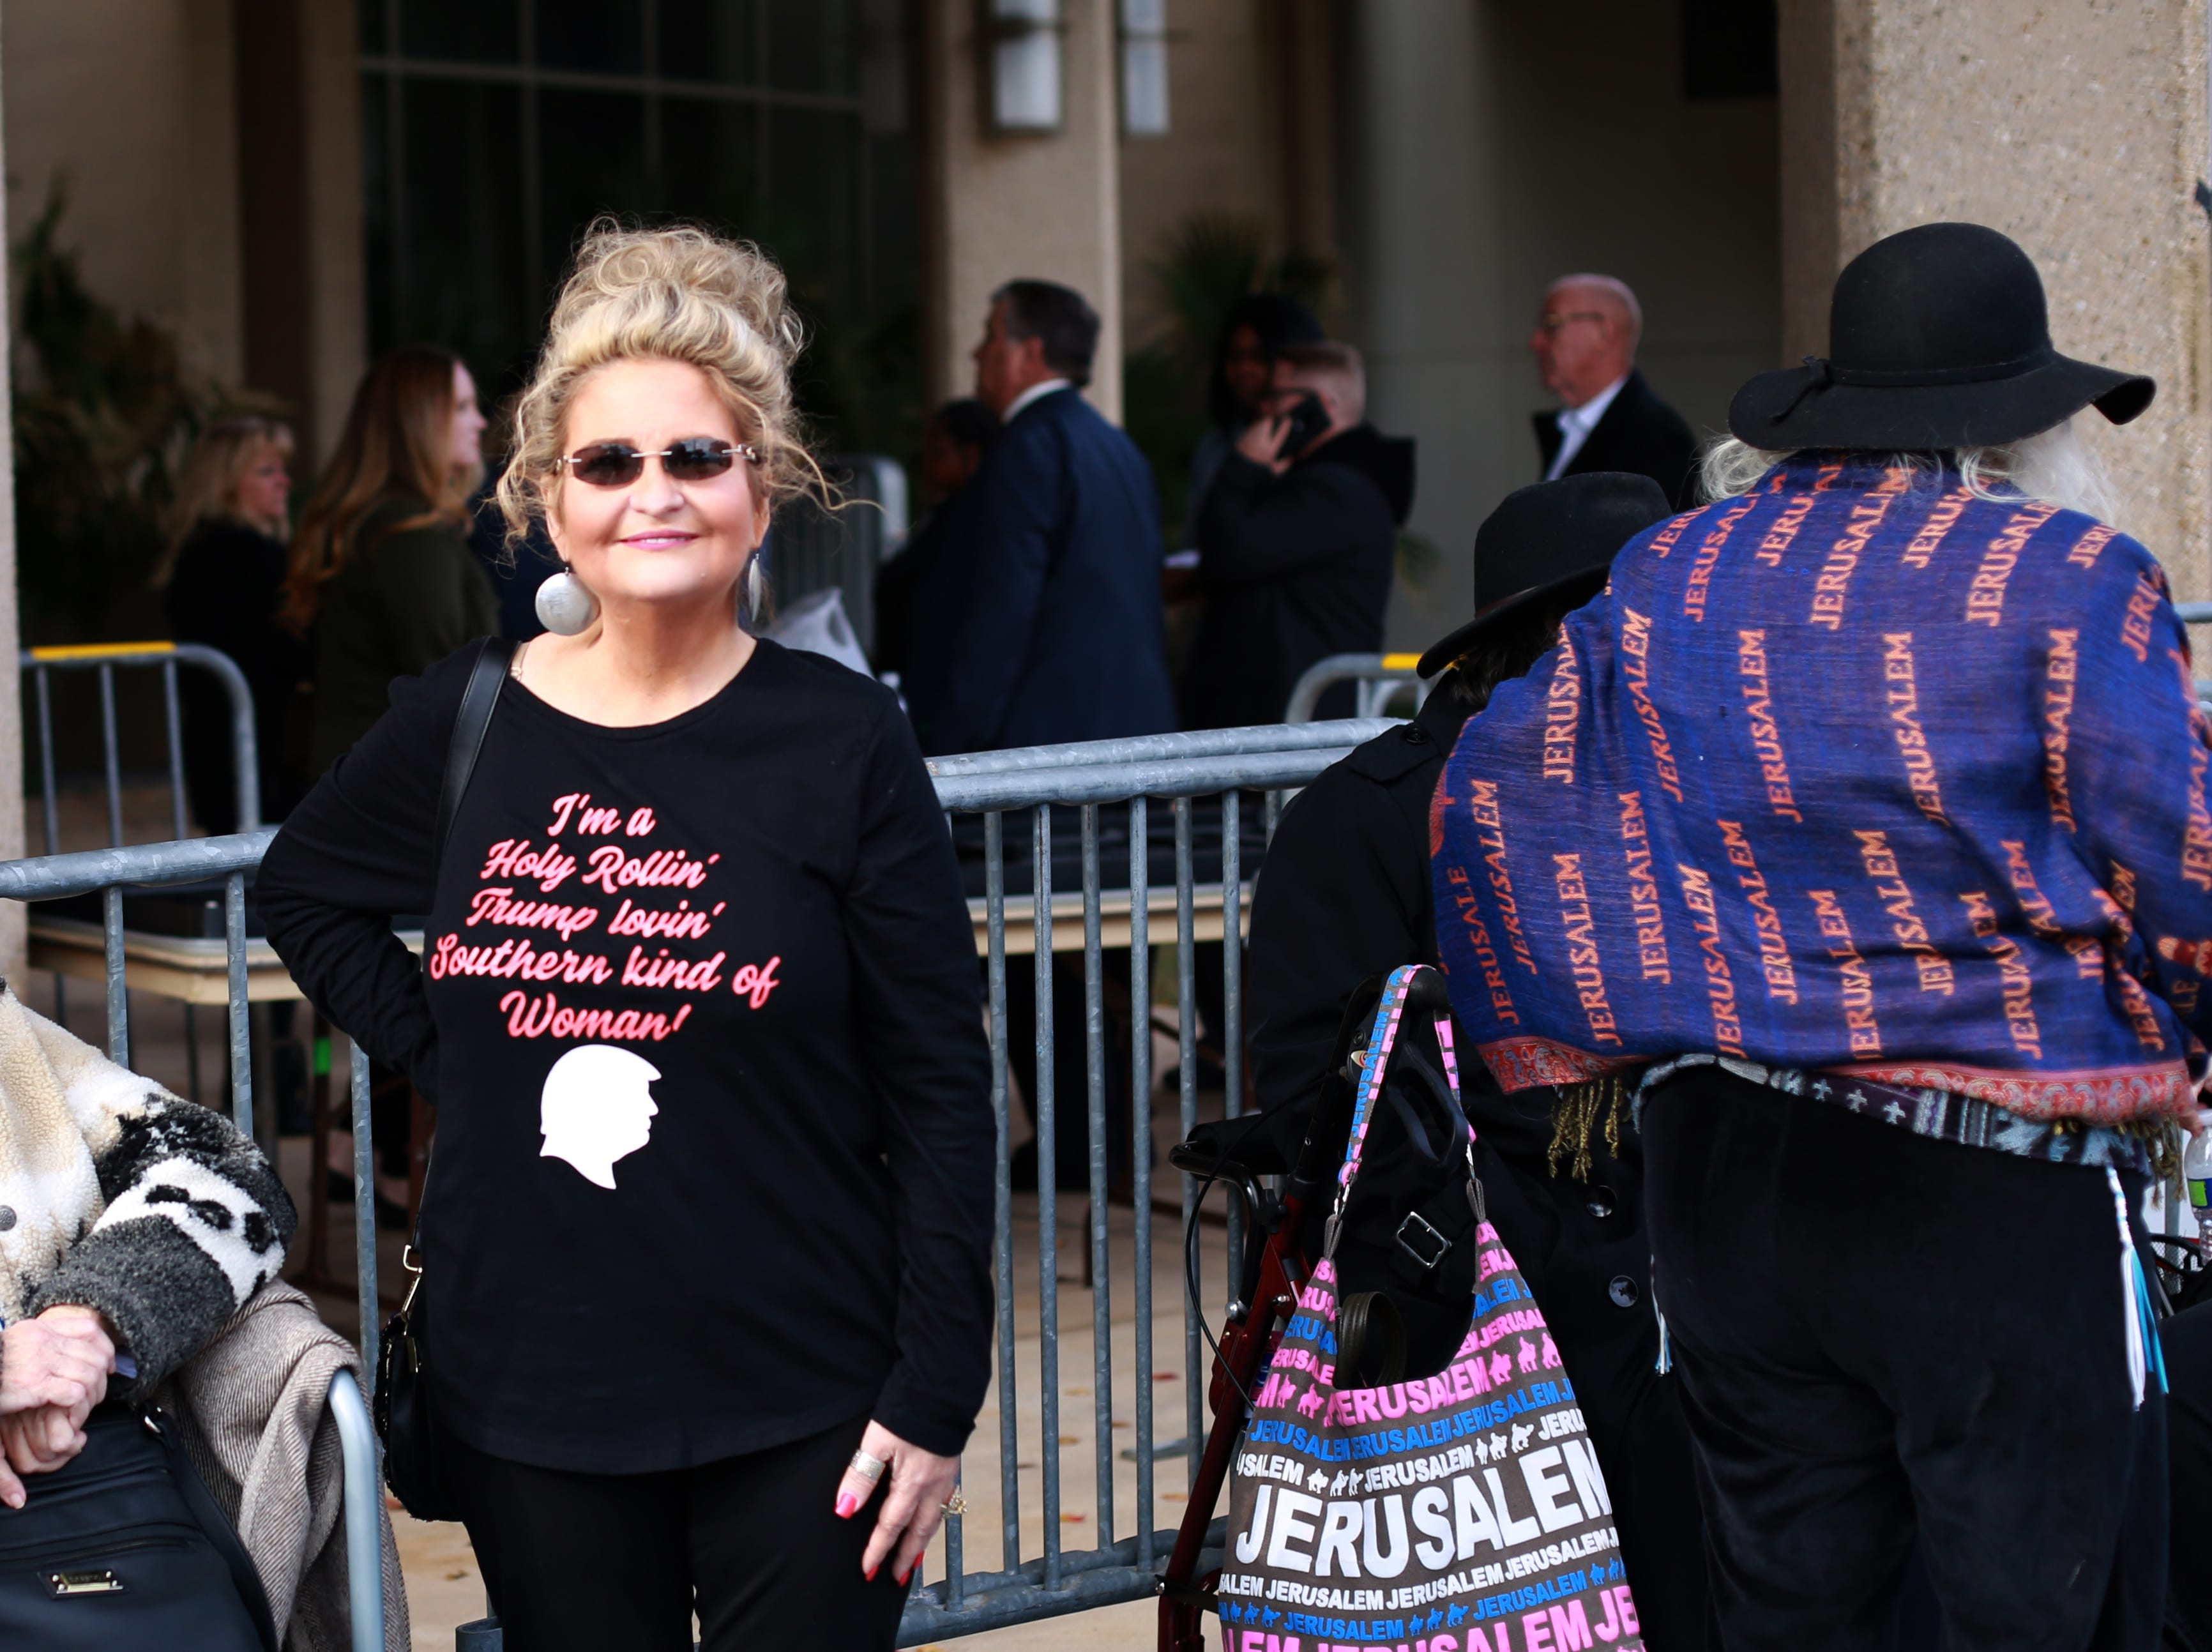 Cindy Crain or Slidell, La.,  is part of a crowd waiting see President Donald Trump speak at a rally at the Mississippi Coast Coliseum and Convention Center on Nov. 26, 2018, in support of U.S. Senate candidate Cindy Hyde-Smith.